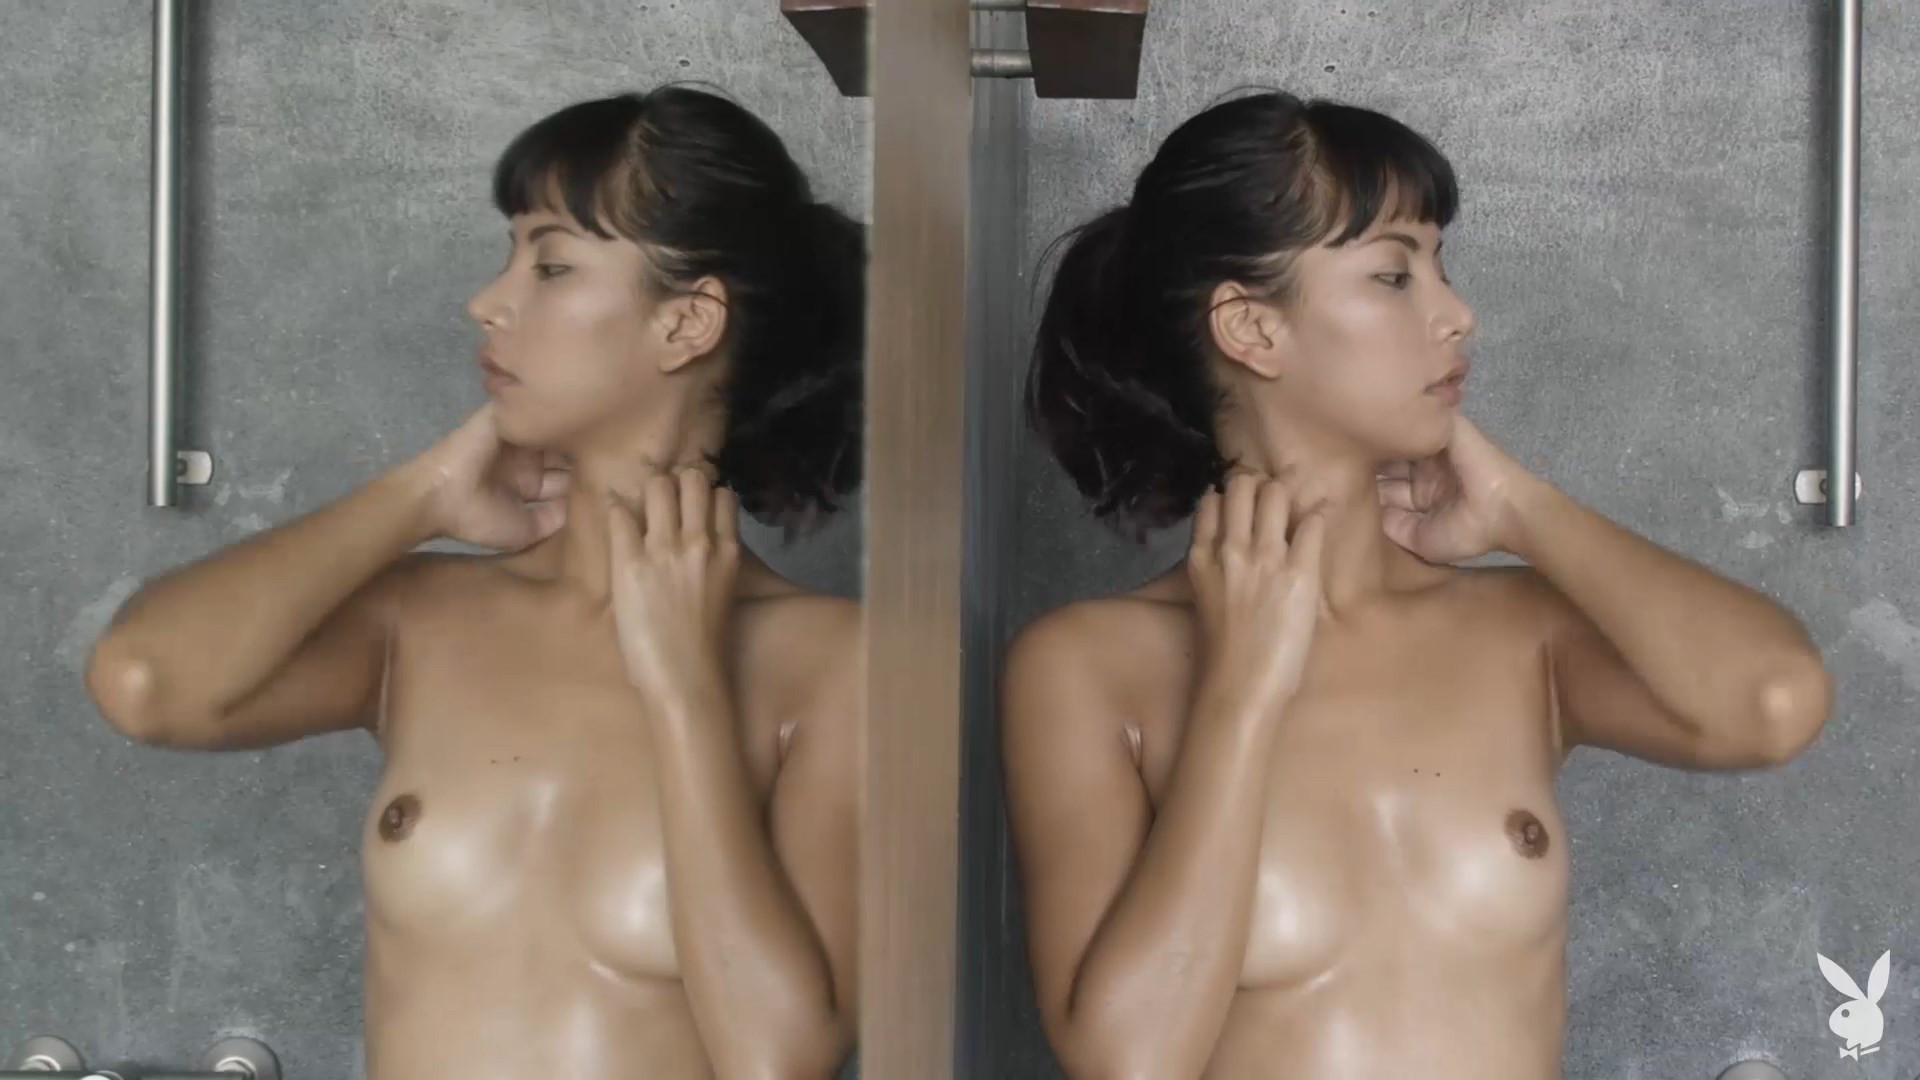 Cara Pin Nude Soft Shower scr thefappening.nu 3